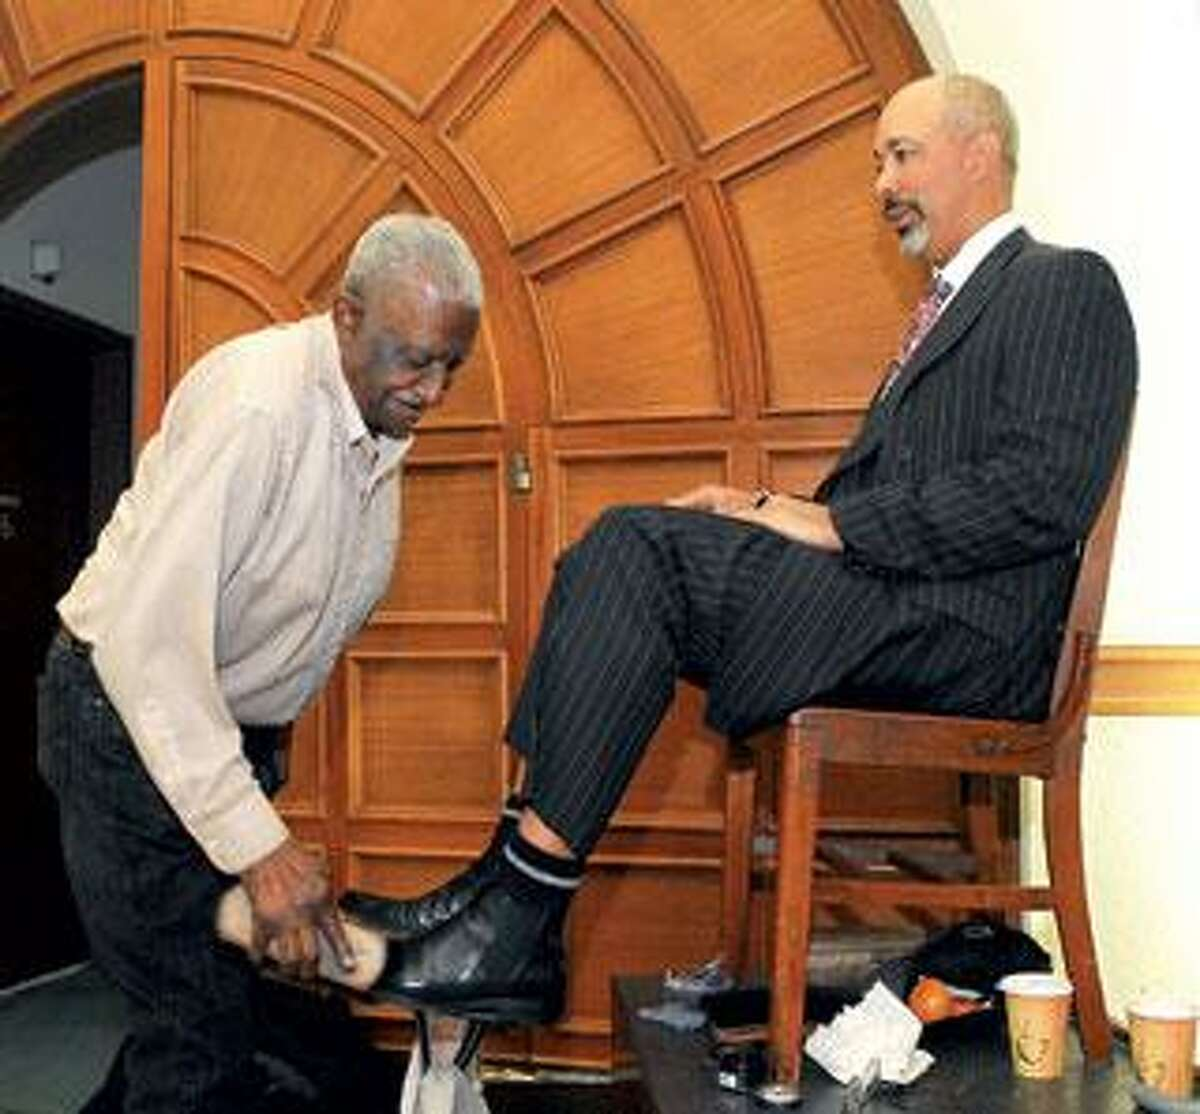 Vincent Williams shines the shoes of Attorney Gerald Harmon in the lobby of 59 Elm St. in New Haven. (Peter Casolino/Register)